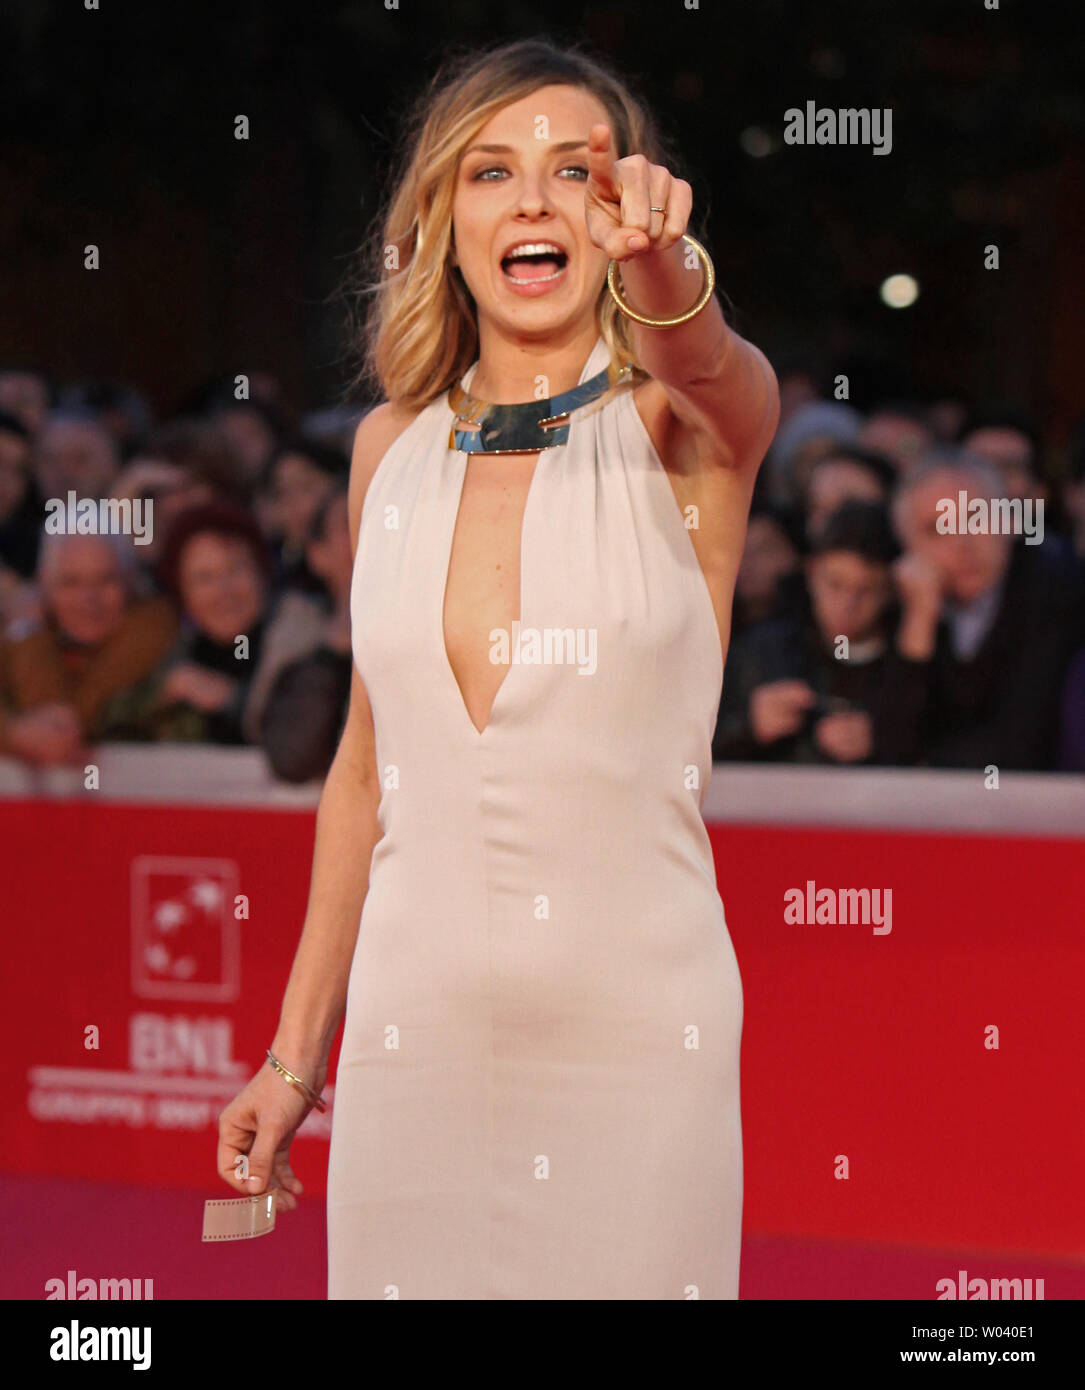 Myriam Catania arrives on the red carpet before the screening of a digitally restored version of the 1960 classic film 'La Dolce Vita' during the 5th Rome International Film Festival in Rome on October 30, 2010.   UPI/David Silpa - Stock Image